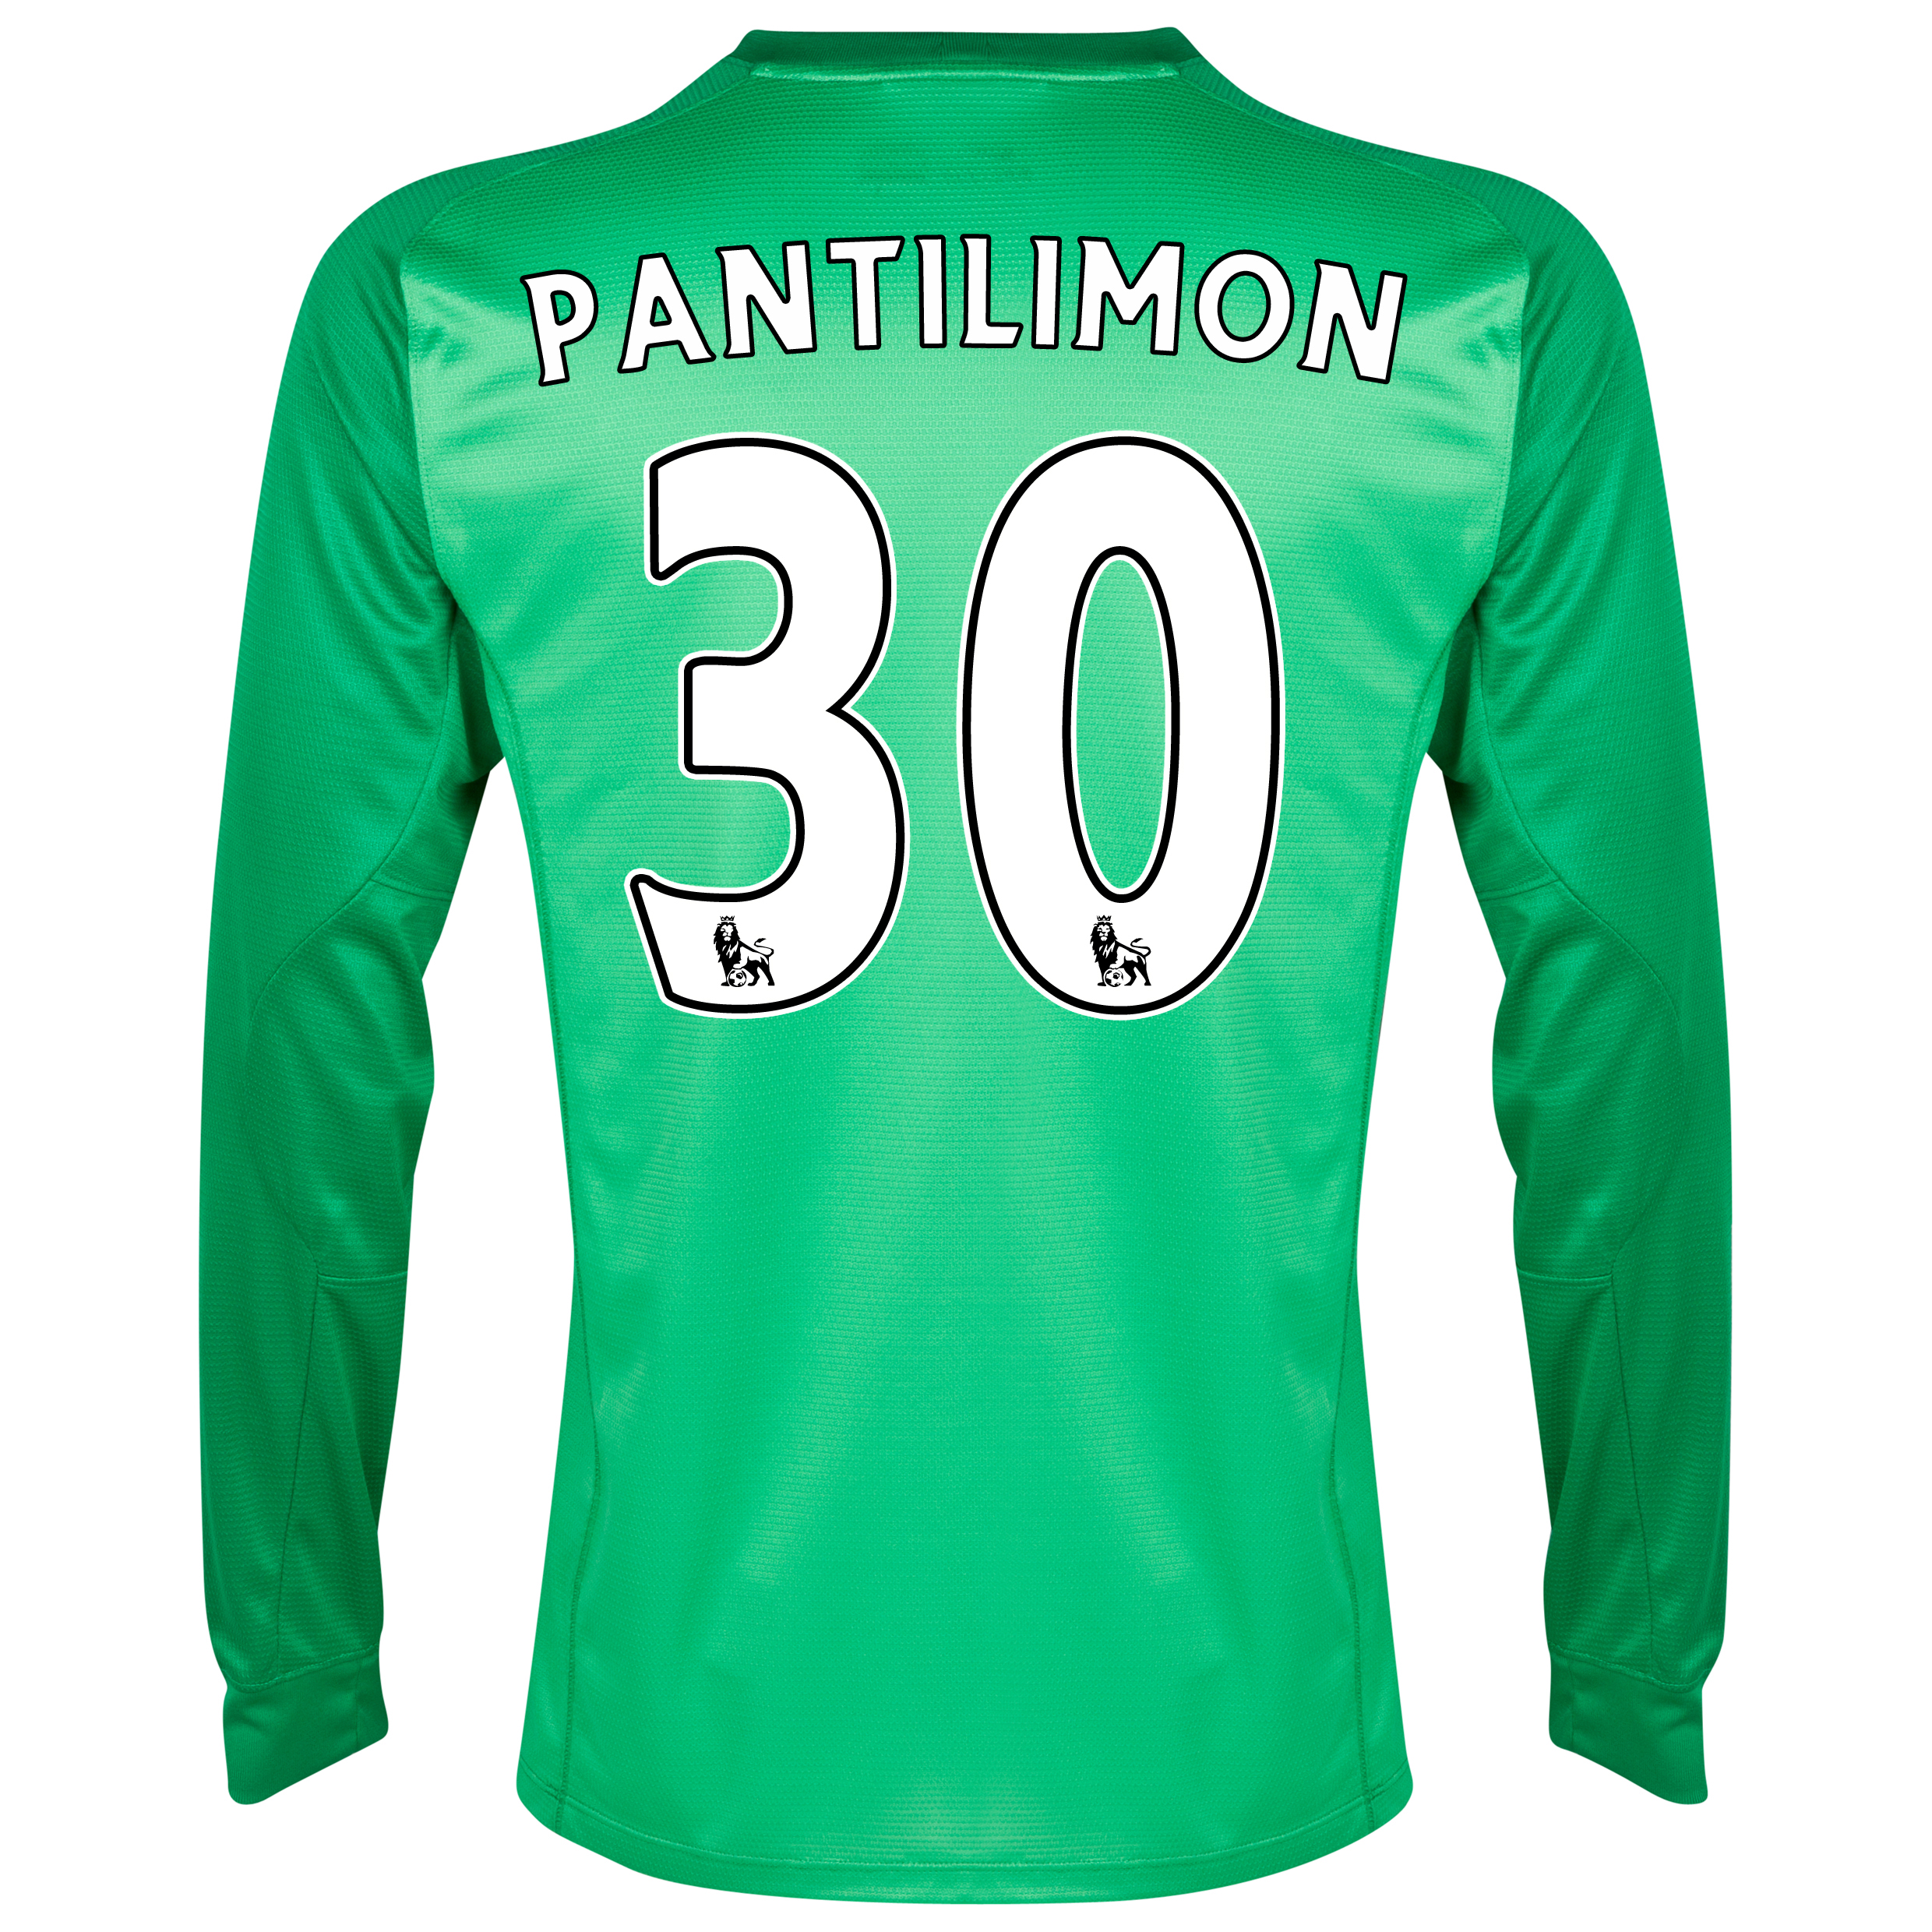 Manchester City Option 2 Goalkeeper Shirt 2013/14 - Junior with Pantilimon 30 printing